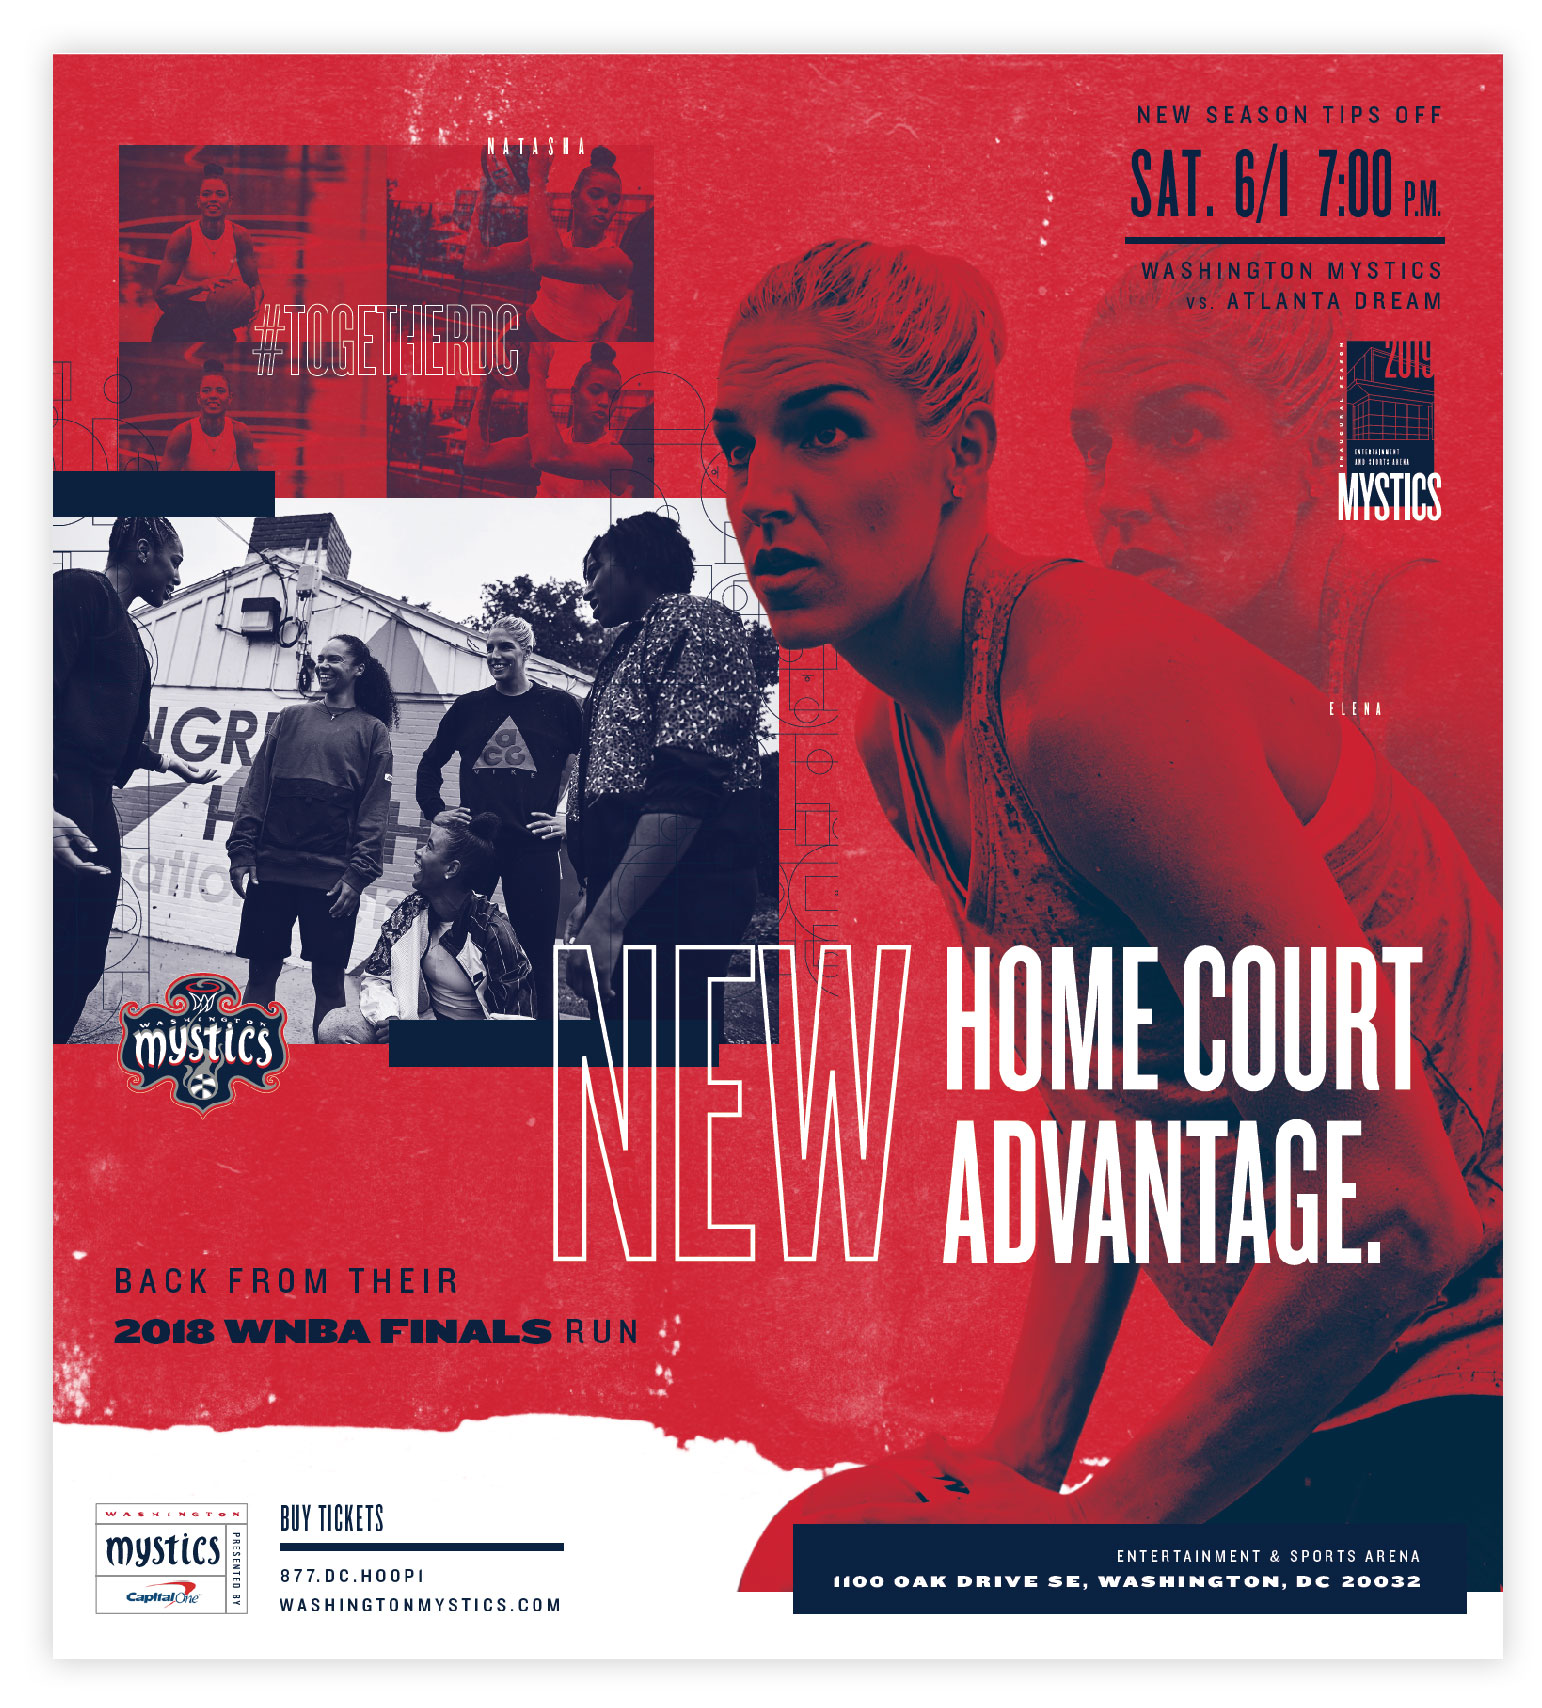 Washington Post Full Page Ad for the Mystics Home Opener